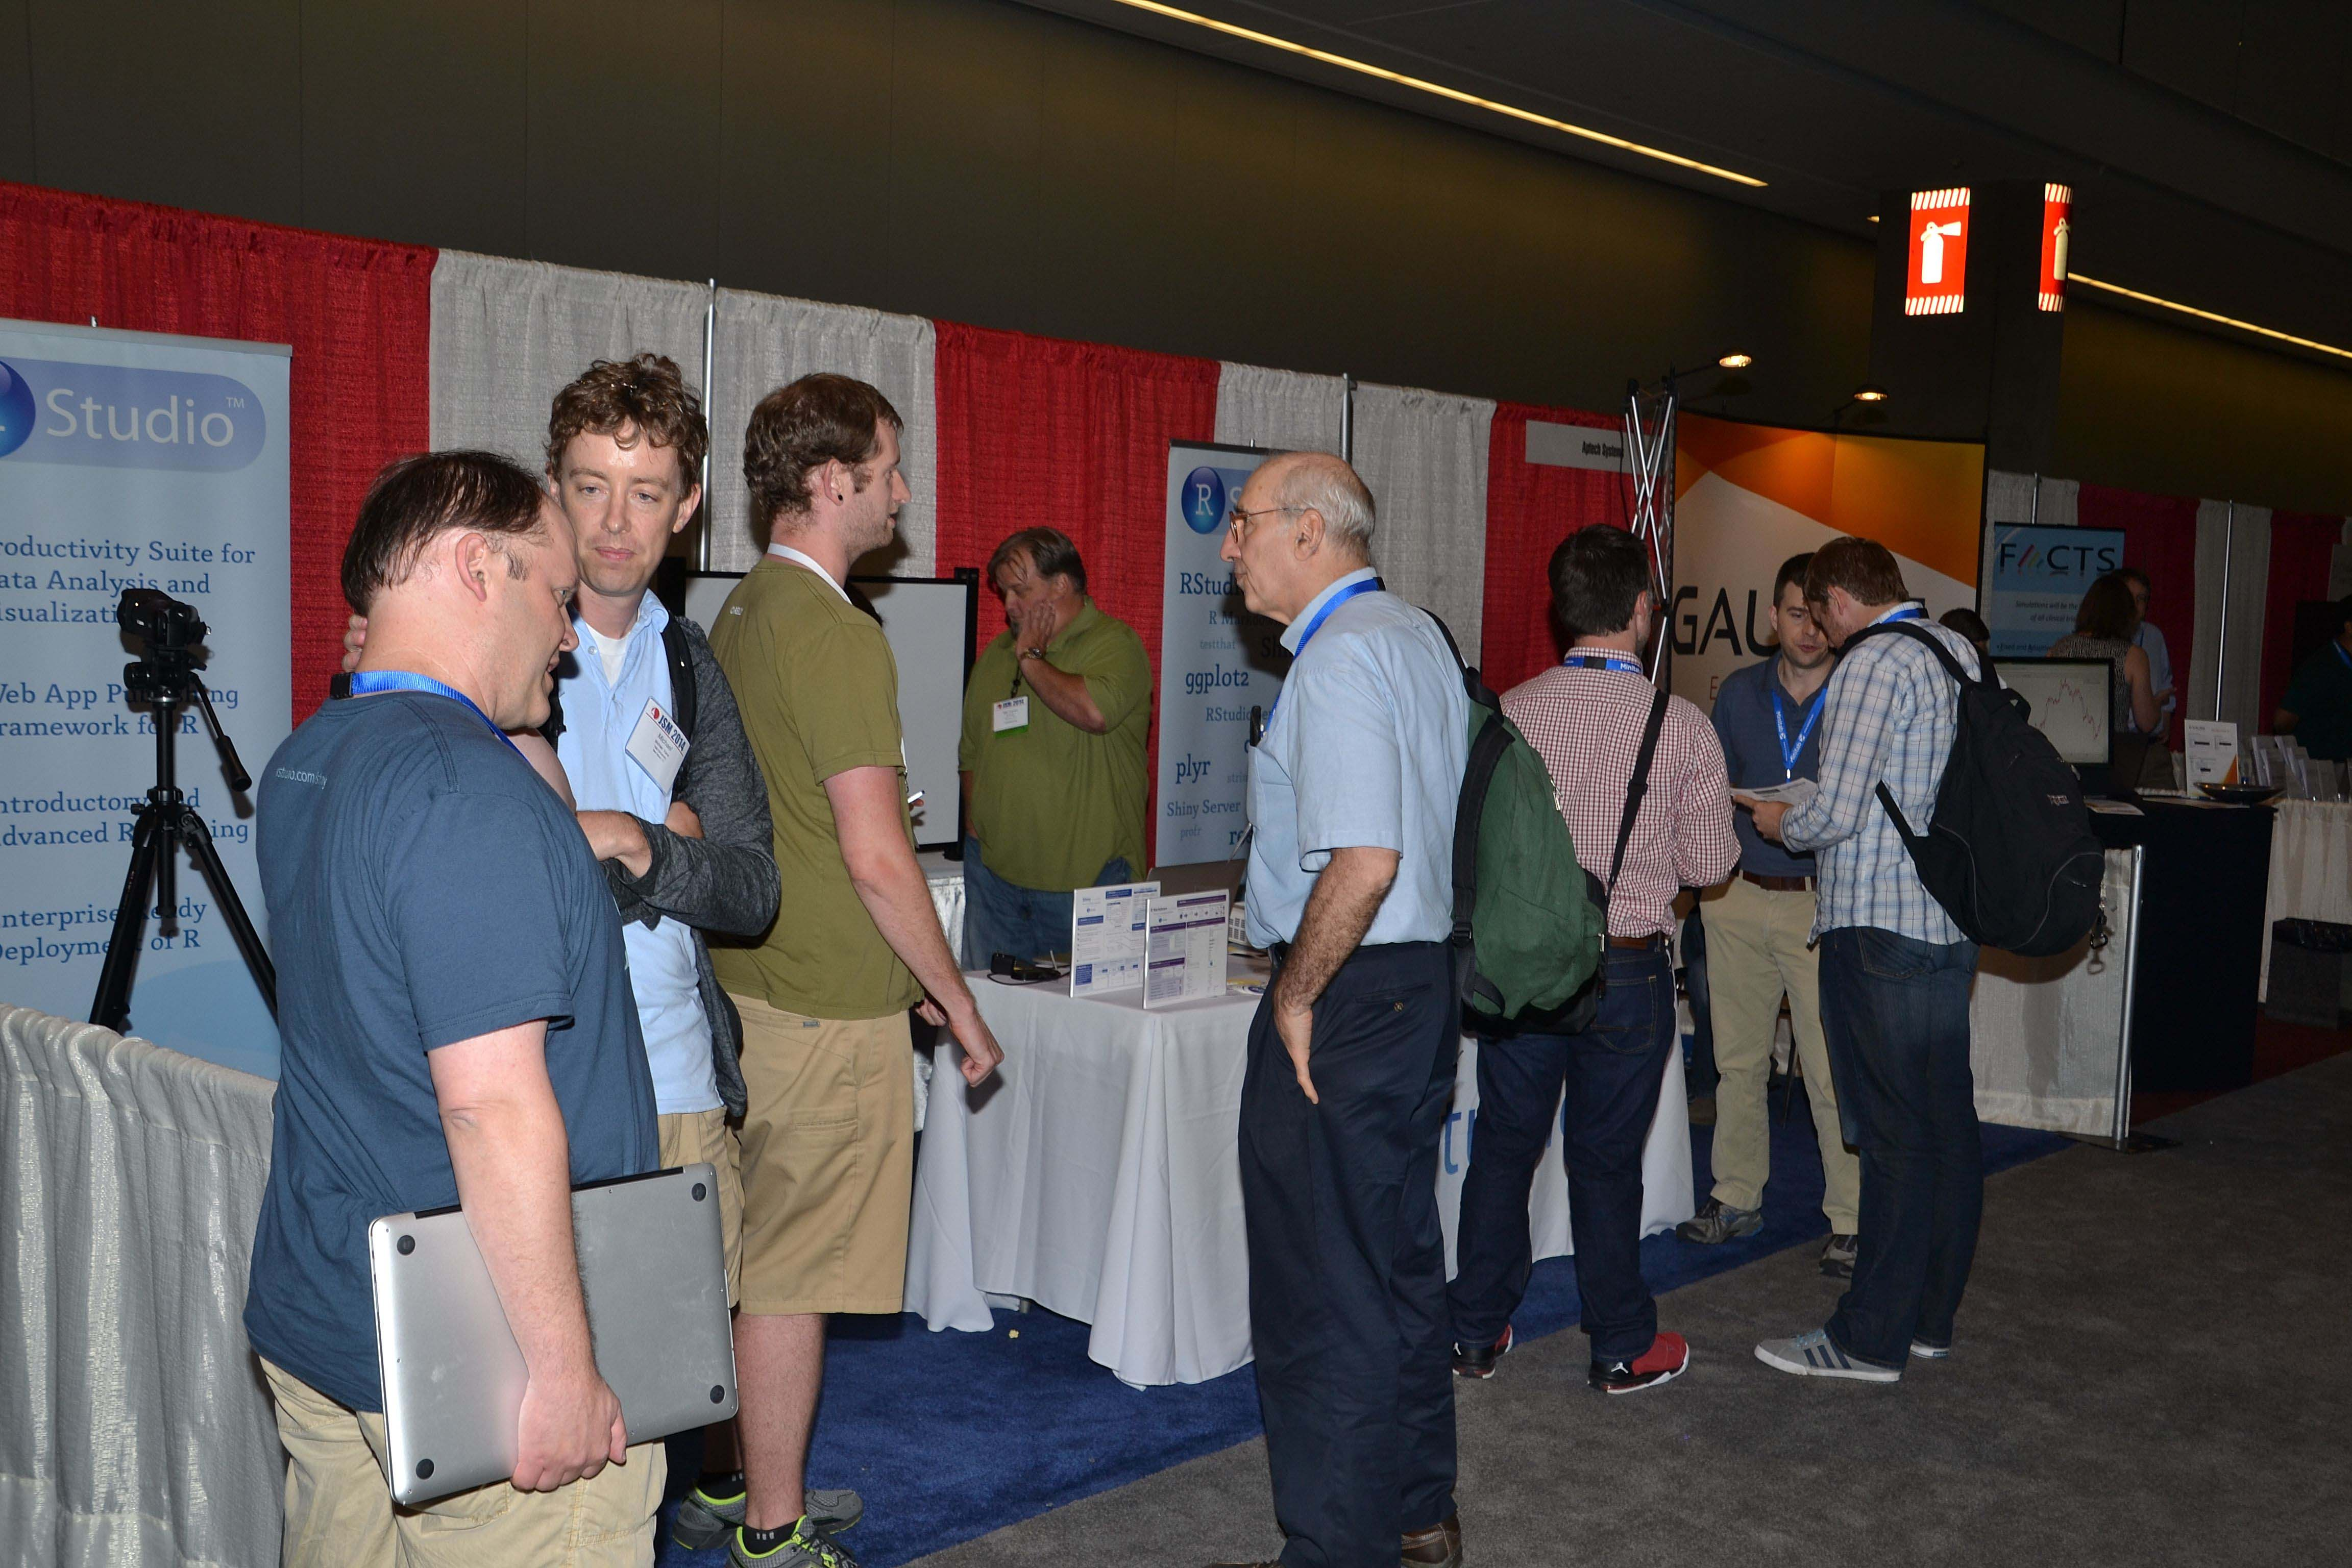 A group of attendees checks out the exhibit hall